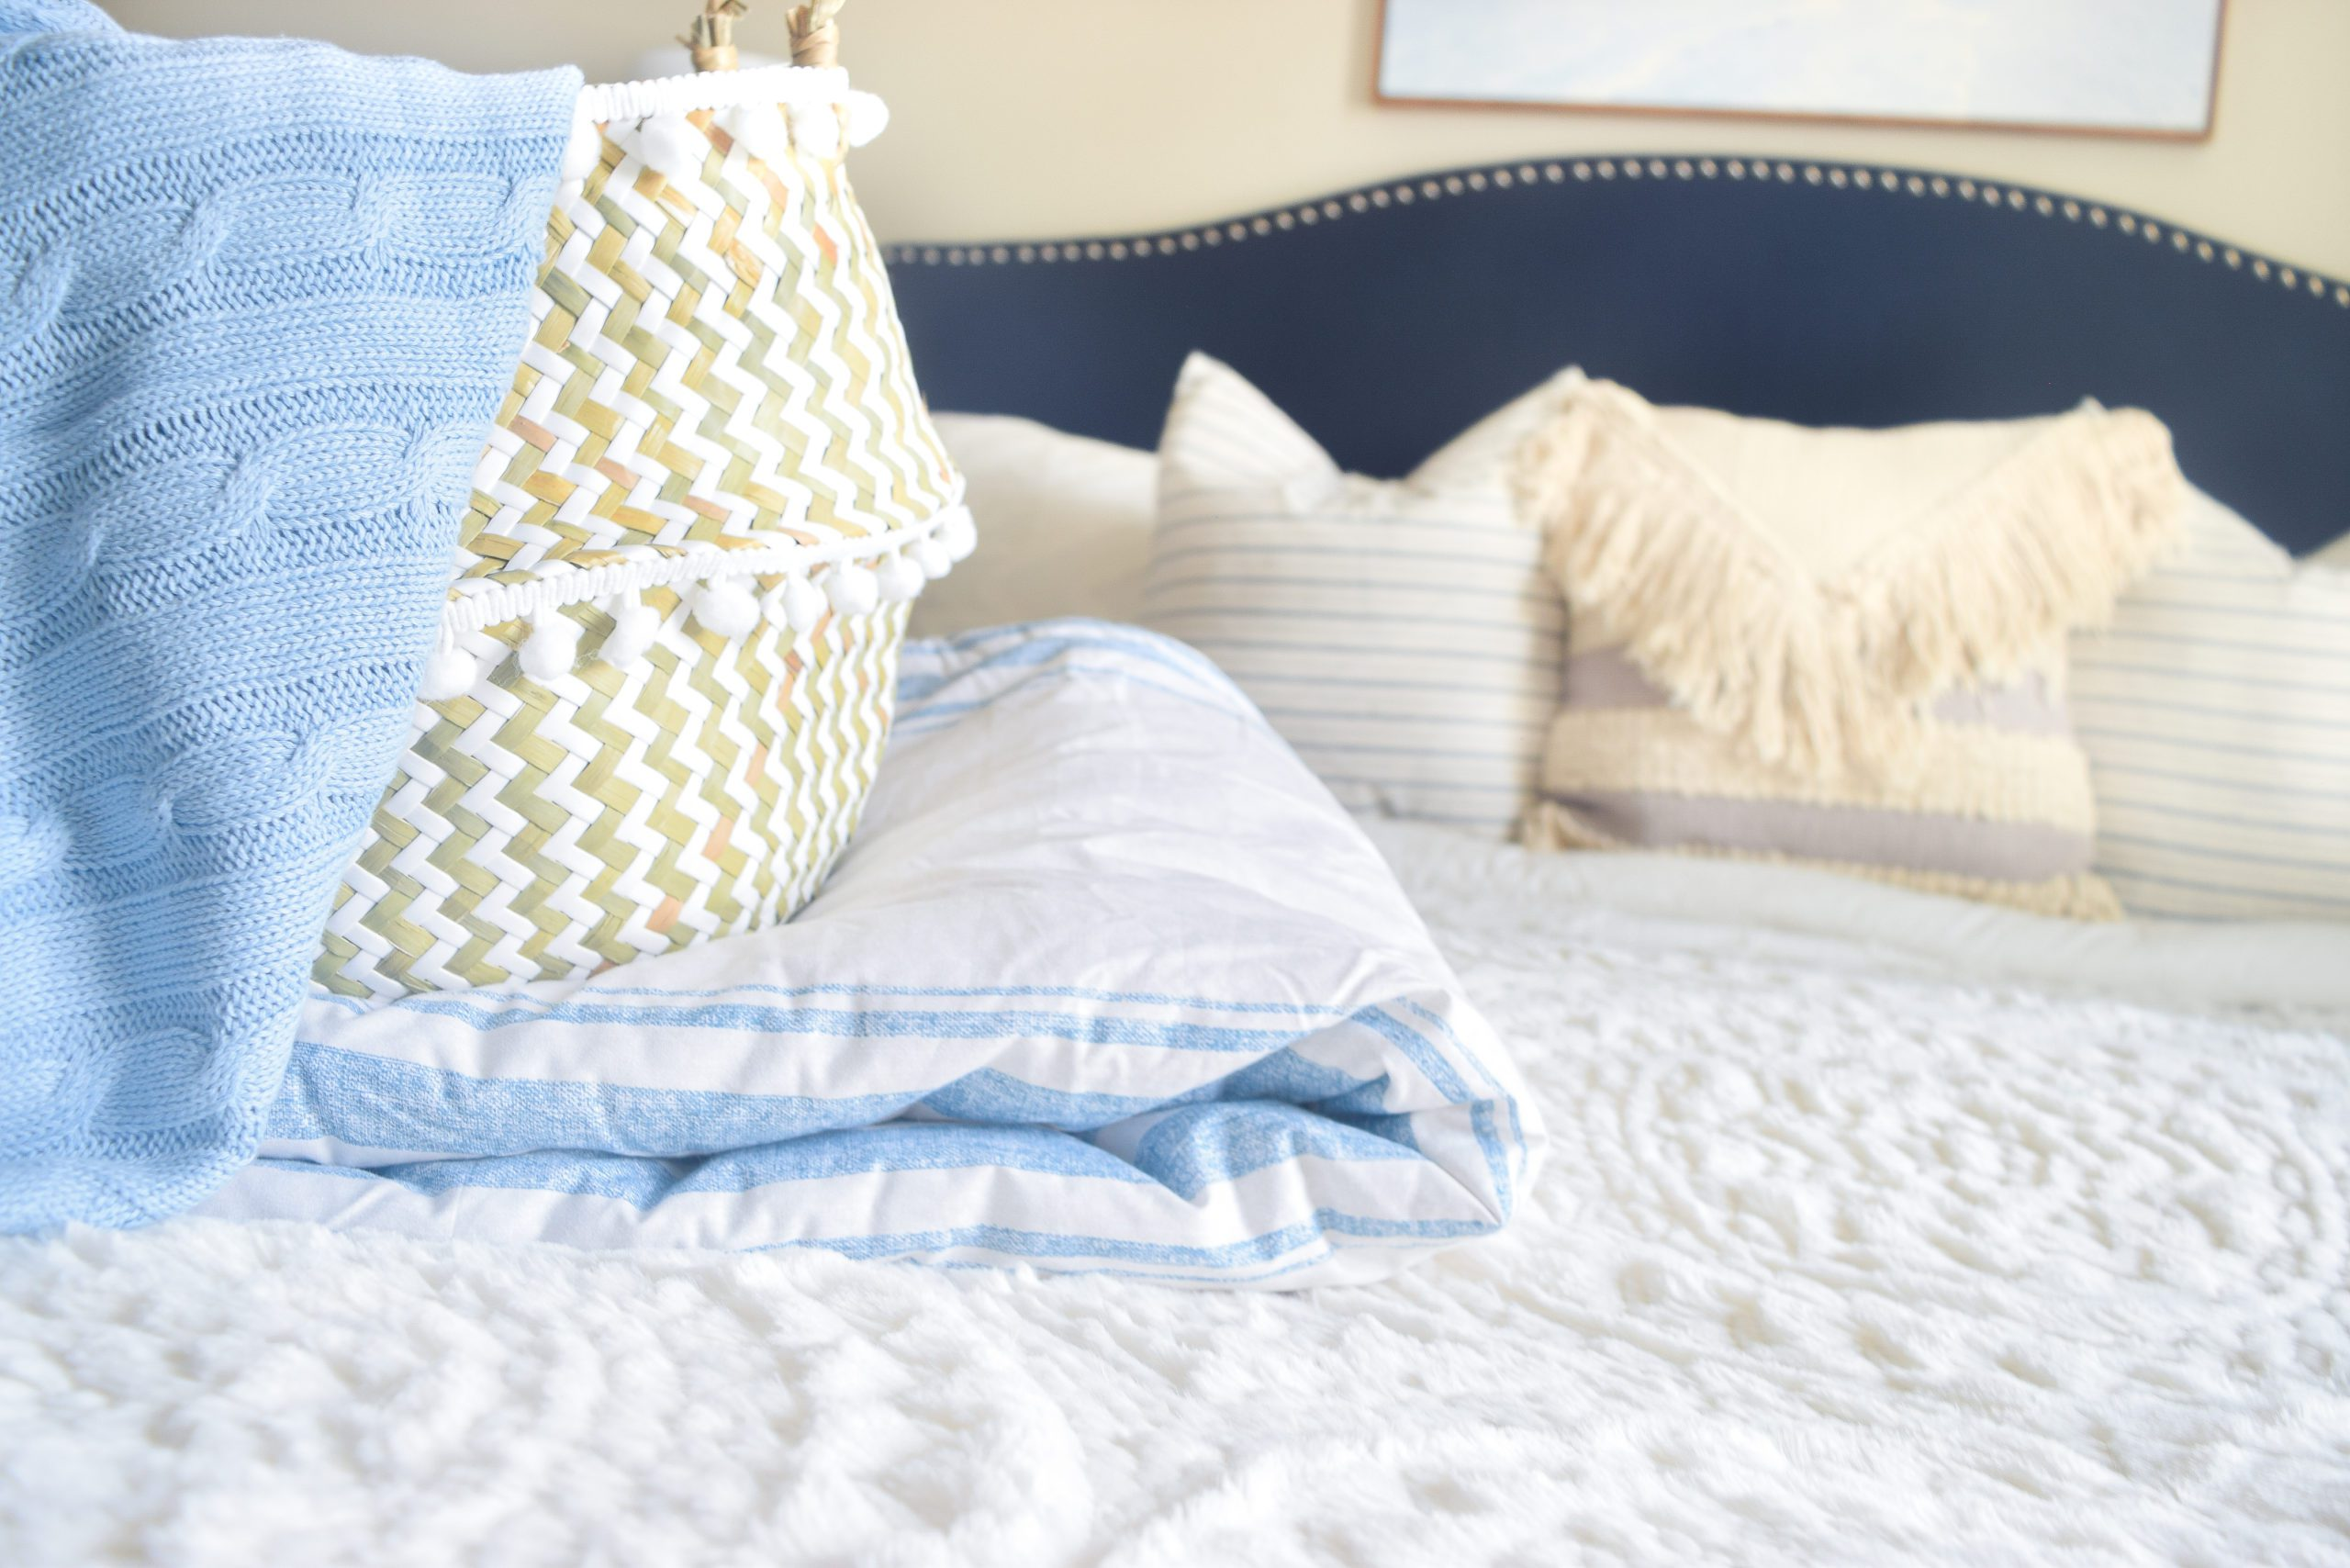 Affordable bedroom decor from Walmart